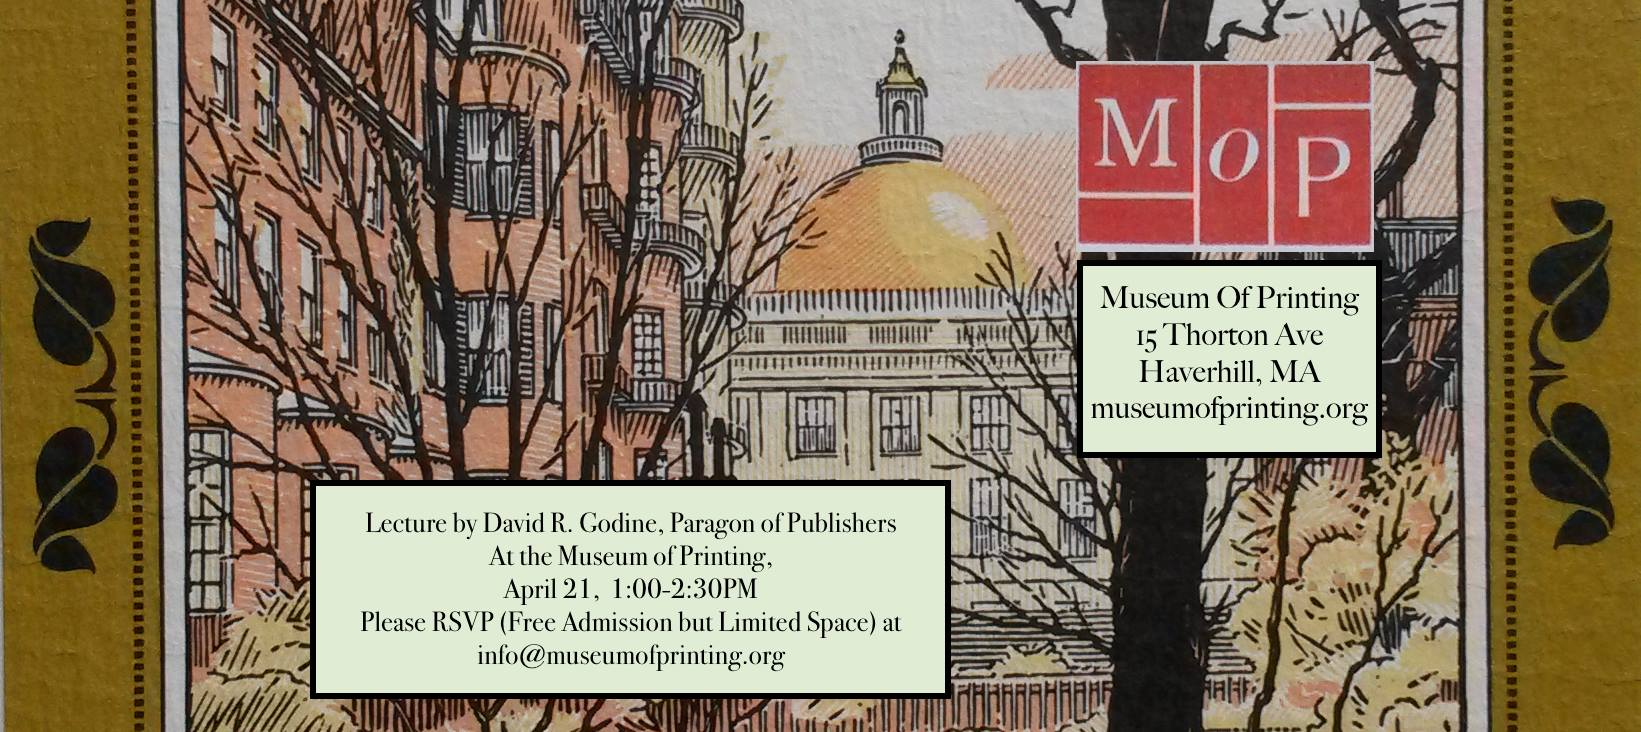 David Godine lecture at the Museum of Printing 4-21-18